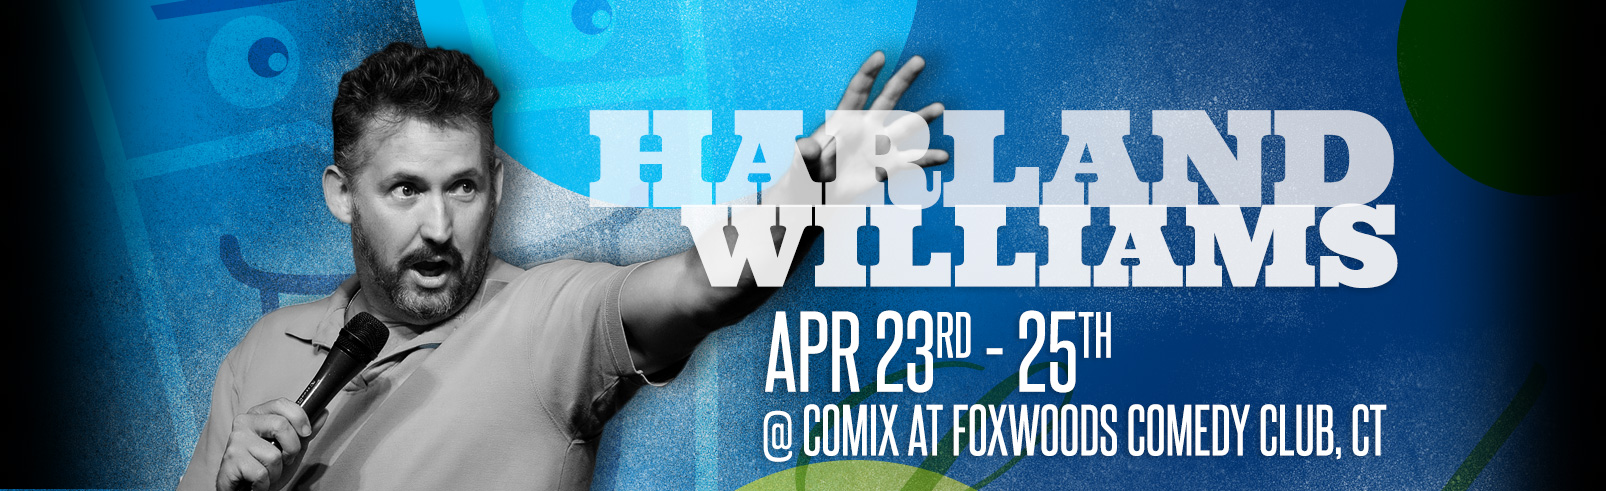 Harland Williams @ Comix at Foxwoods Comedy Club